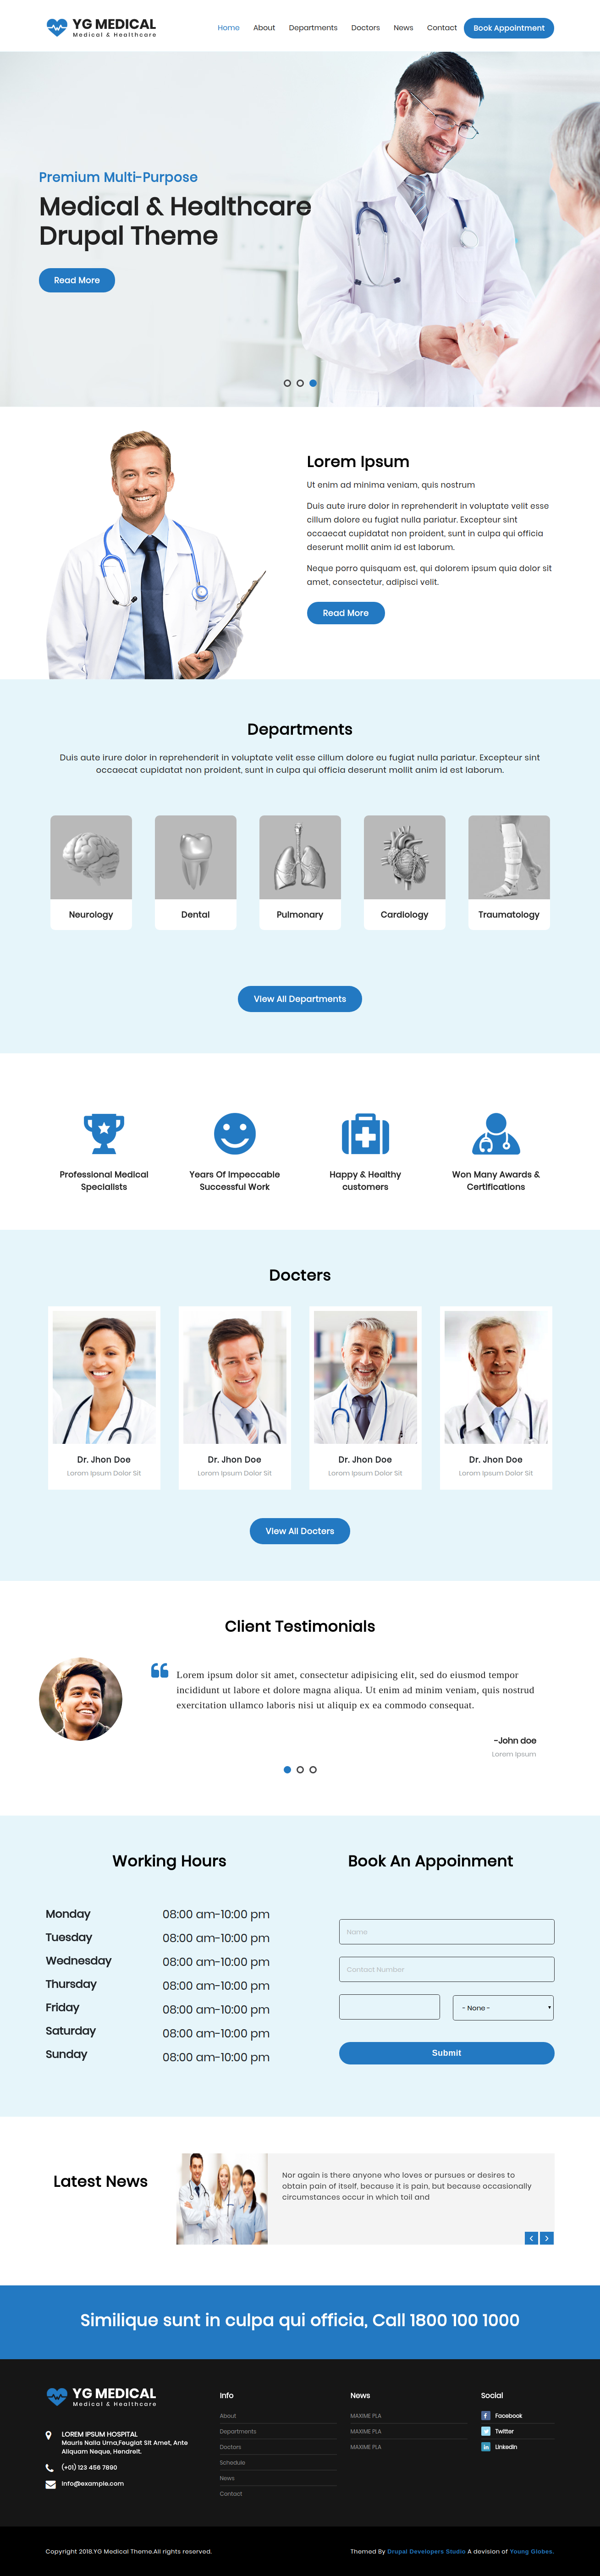 drupal themes healthcare